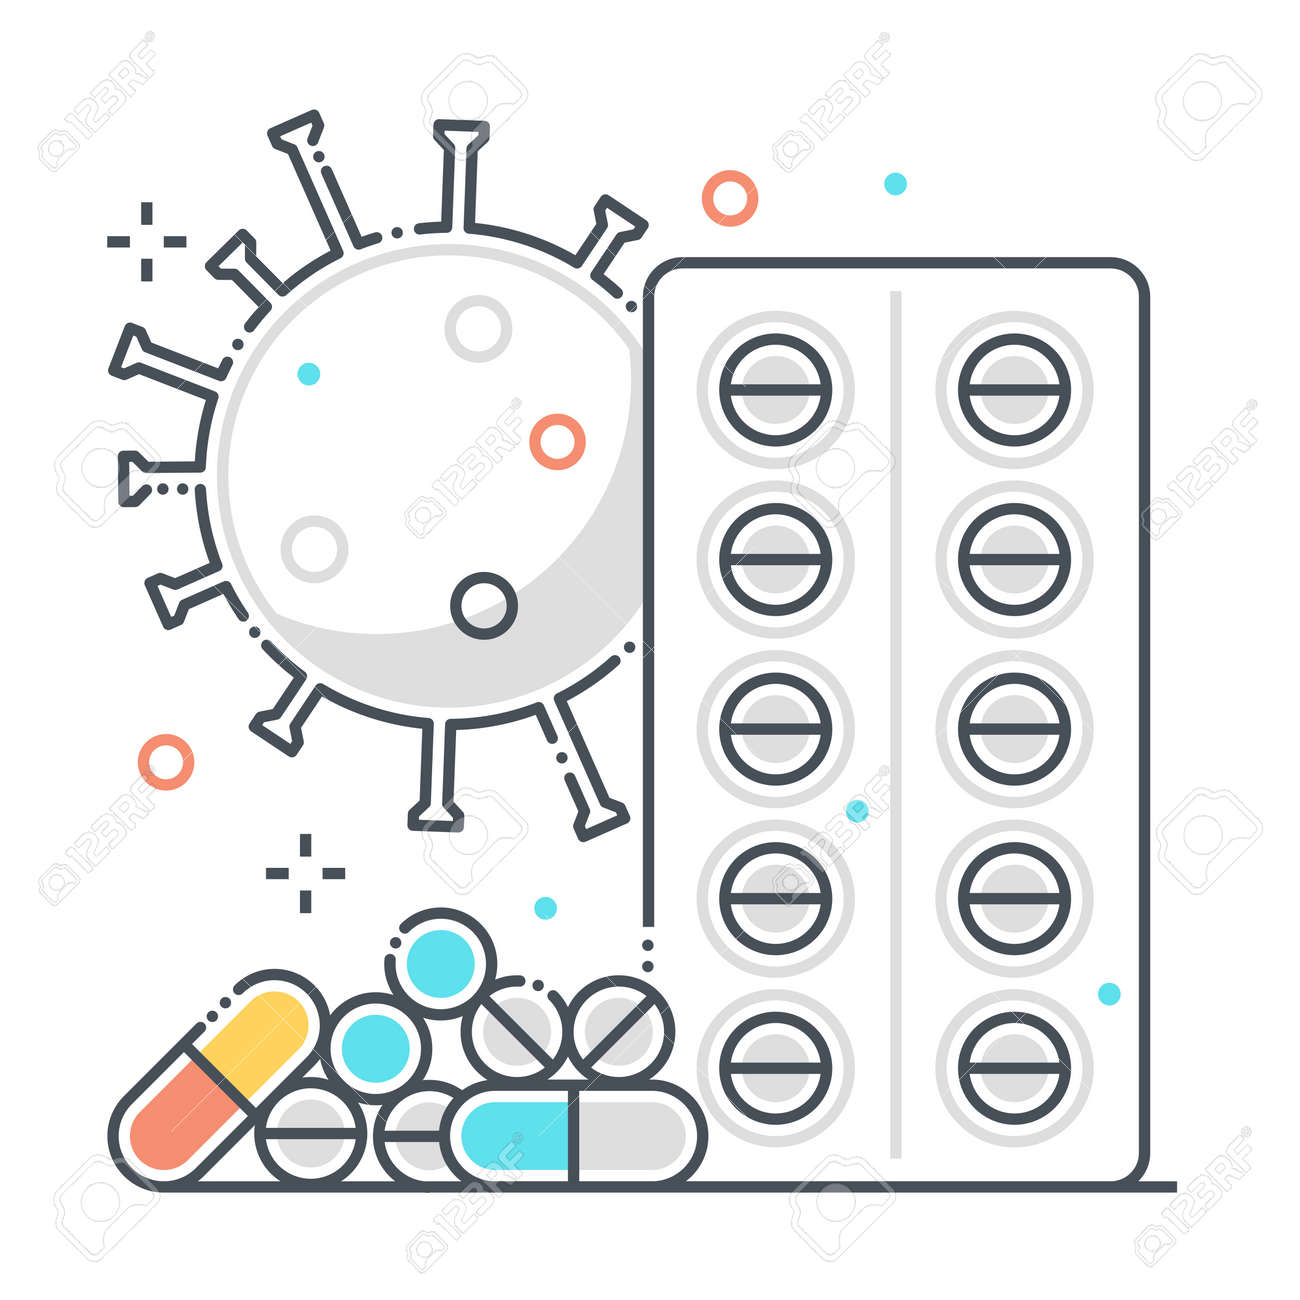 Pills related color line vector icon, illustration. The icon is about treatment, medicine, pharmacy, corona virus, contamination, epidemic. The composition is infinitely scalable. - 163698145